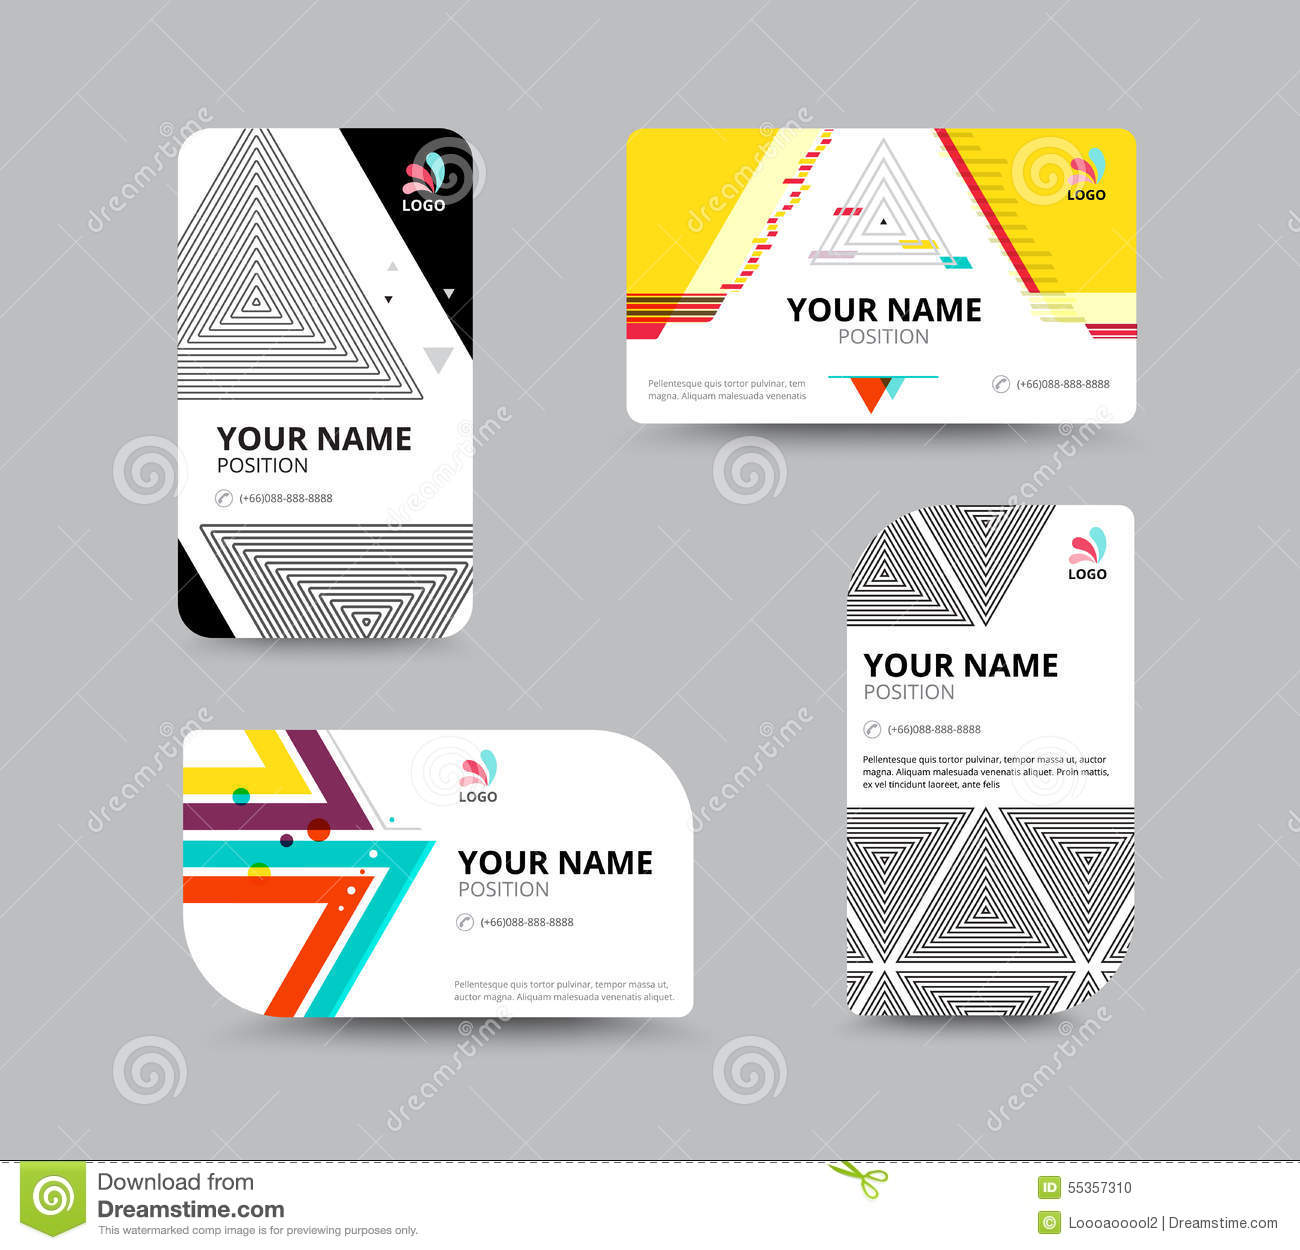 Business card template business card layout design for Business card layout template